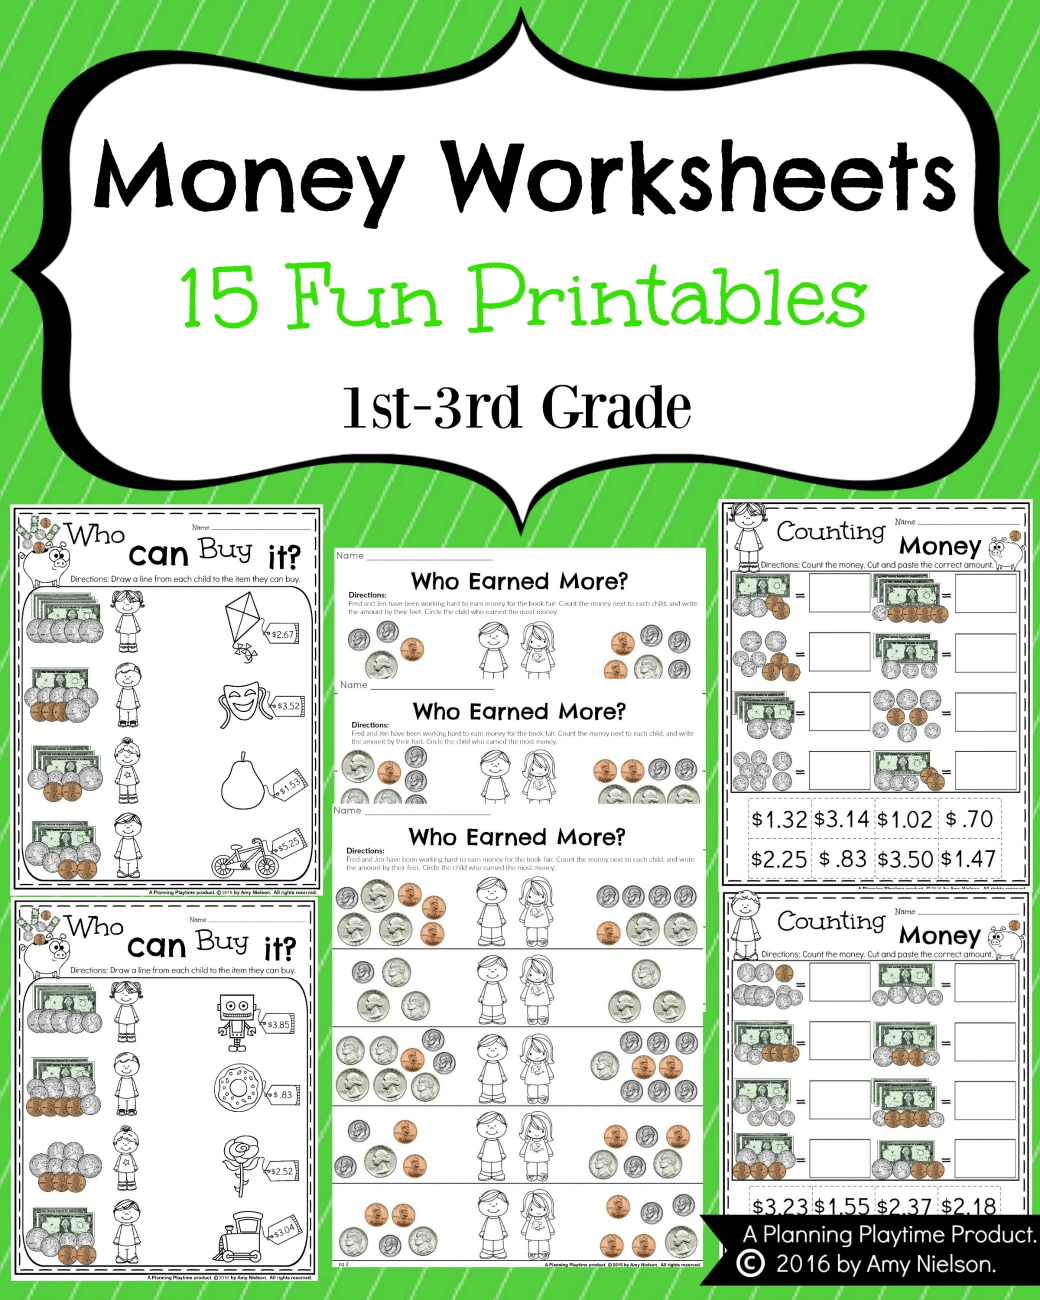 Learning Money Worksheet 2nd Grade